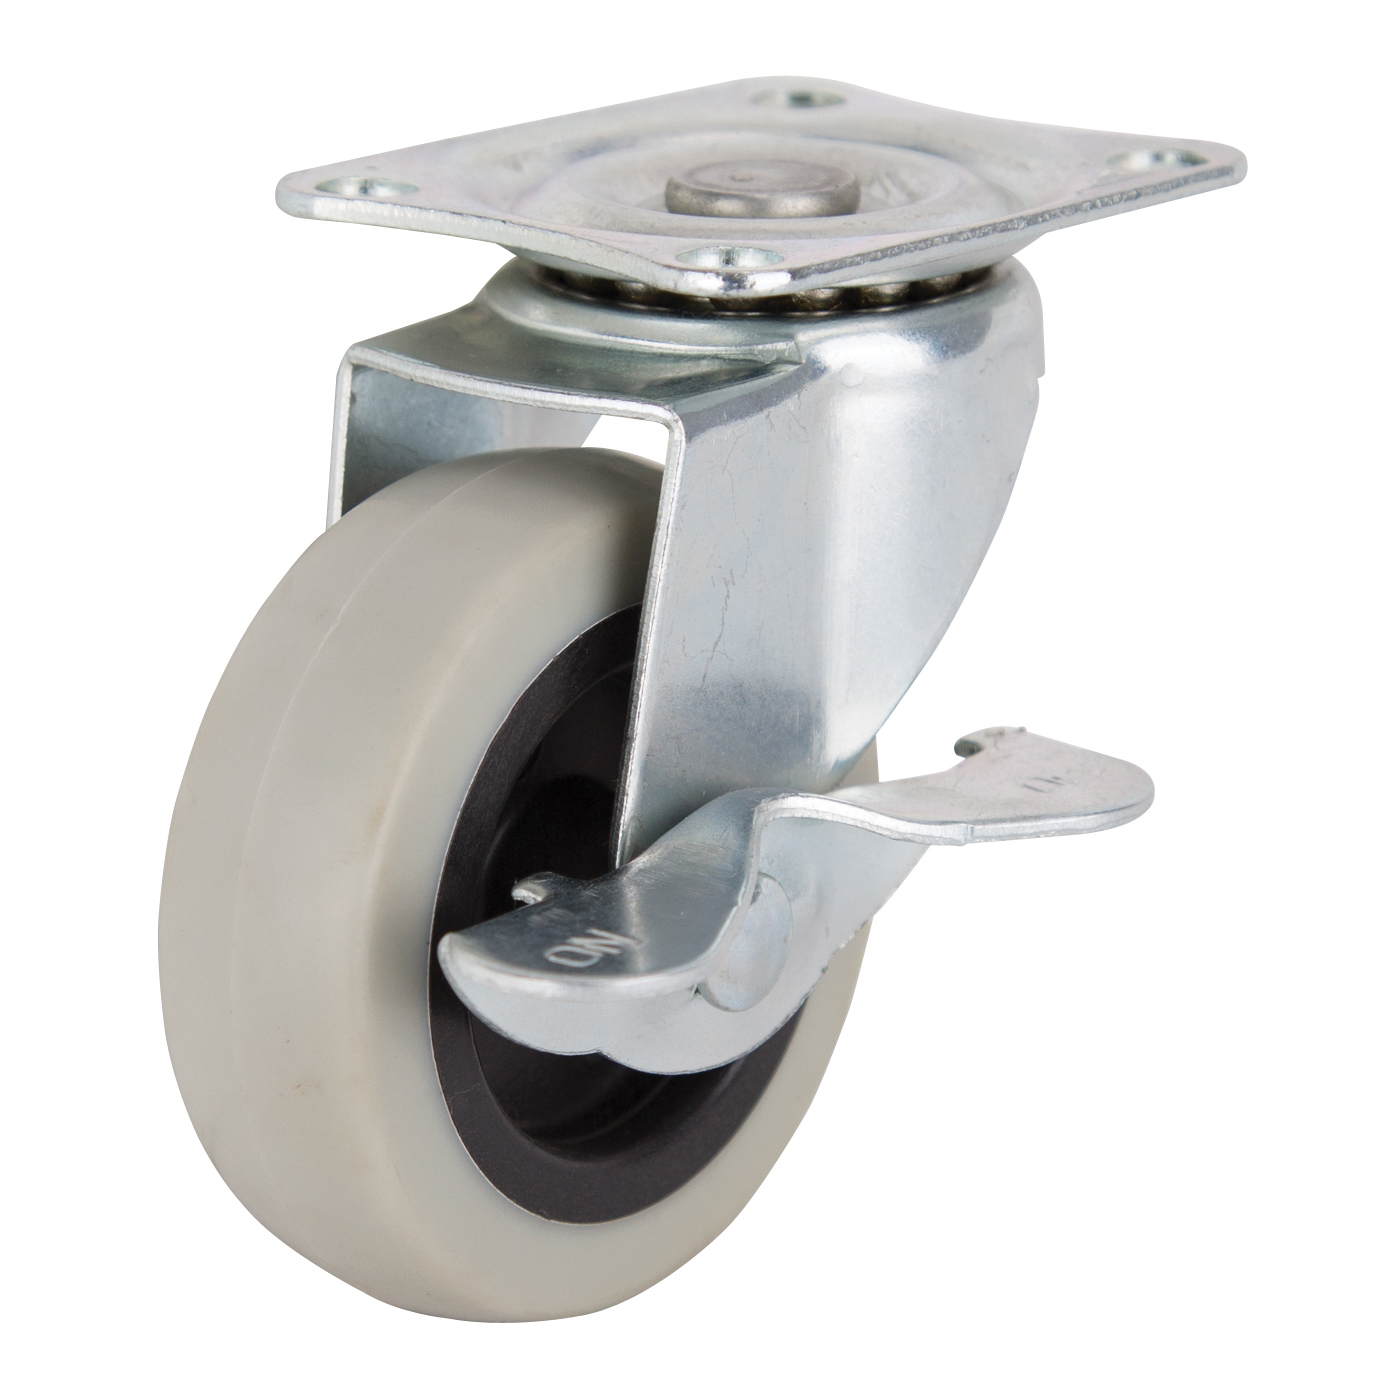 Picture of ProSource JC-N06-G Swivel Caster with Brake, 3 in Dia Wheel, Thermoplastic Rubber Wheel, Gray, 130 lb